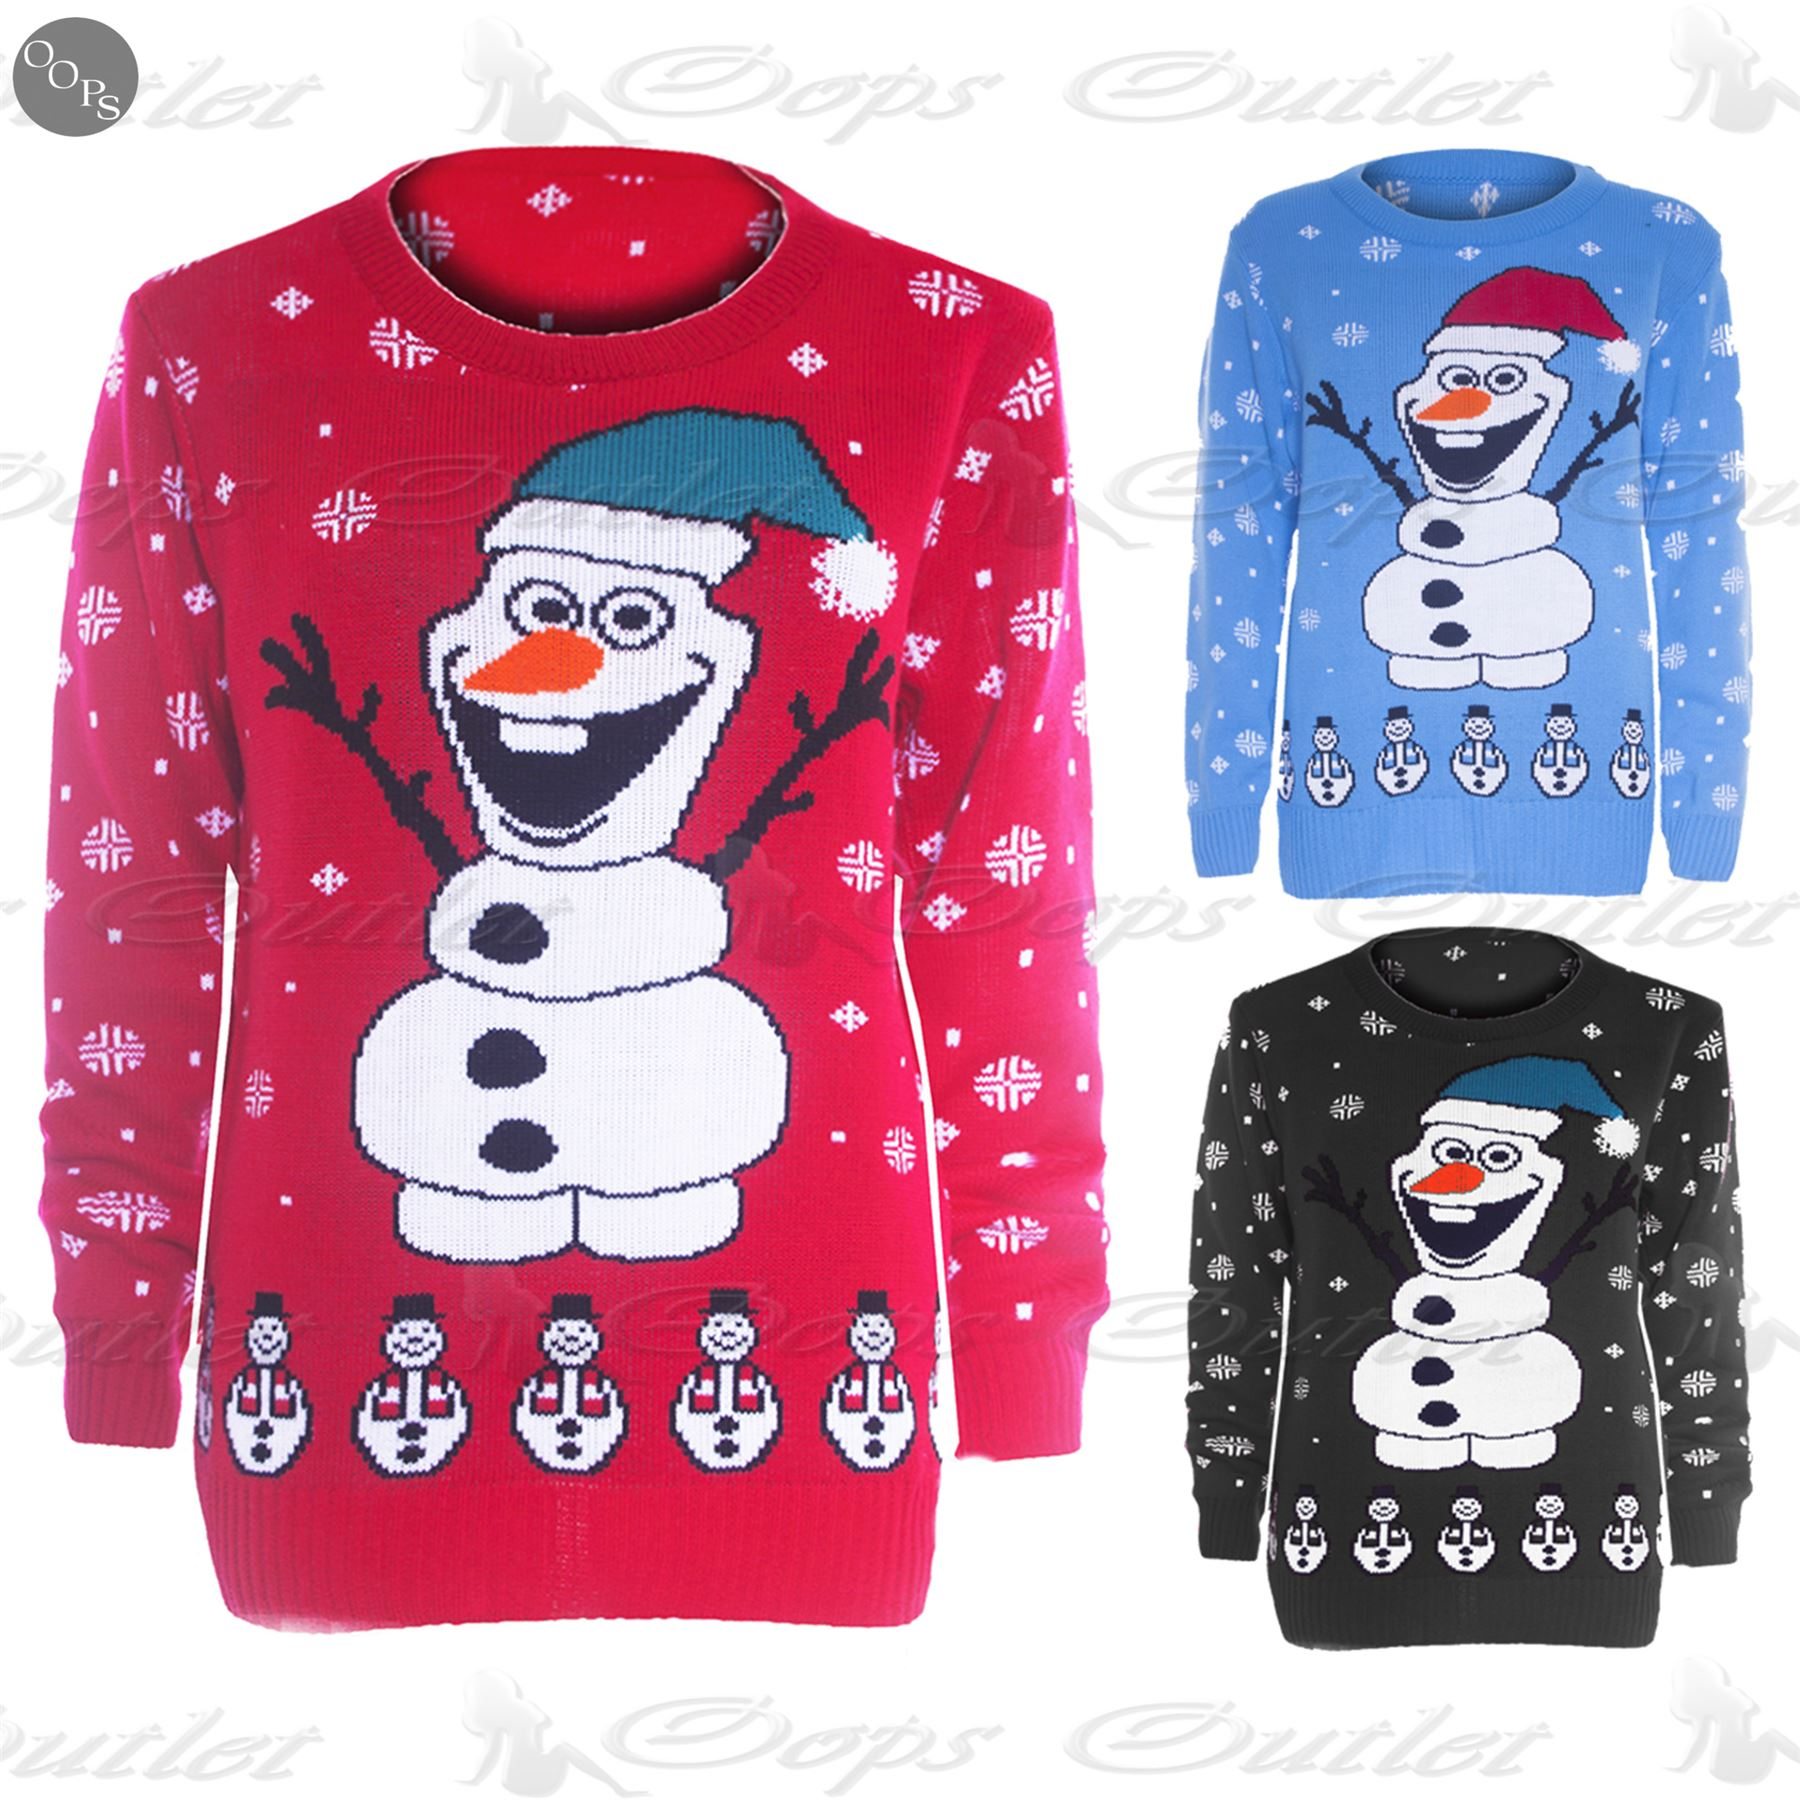 Olaf Christmas Jumper Knitting Pattern : Mens Womens Unisex Christmas Knitted Olaf Frozen HAT Novelty Sweater Jumper T...